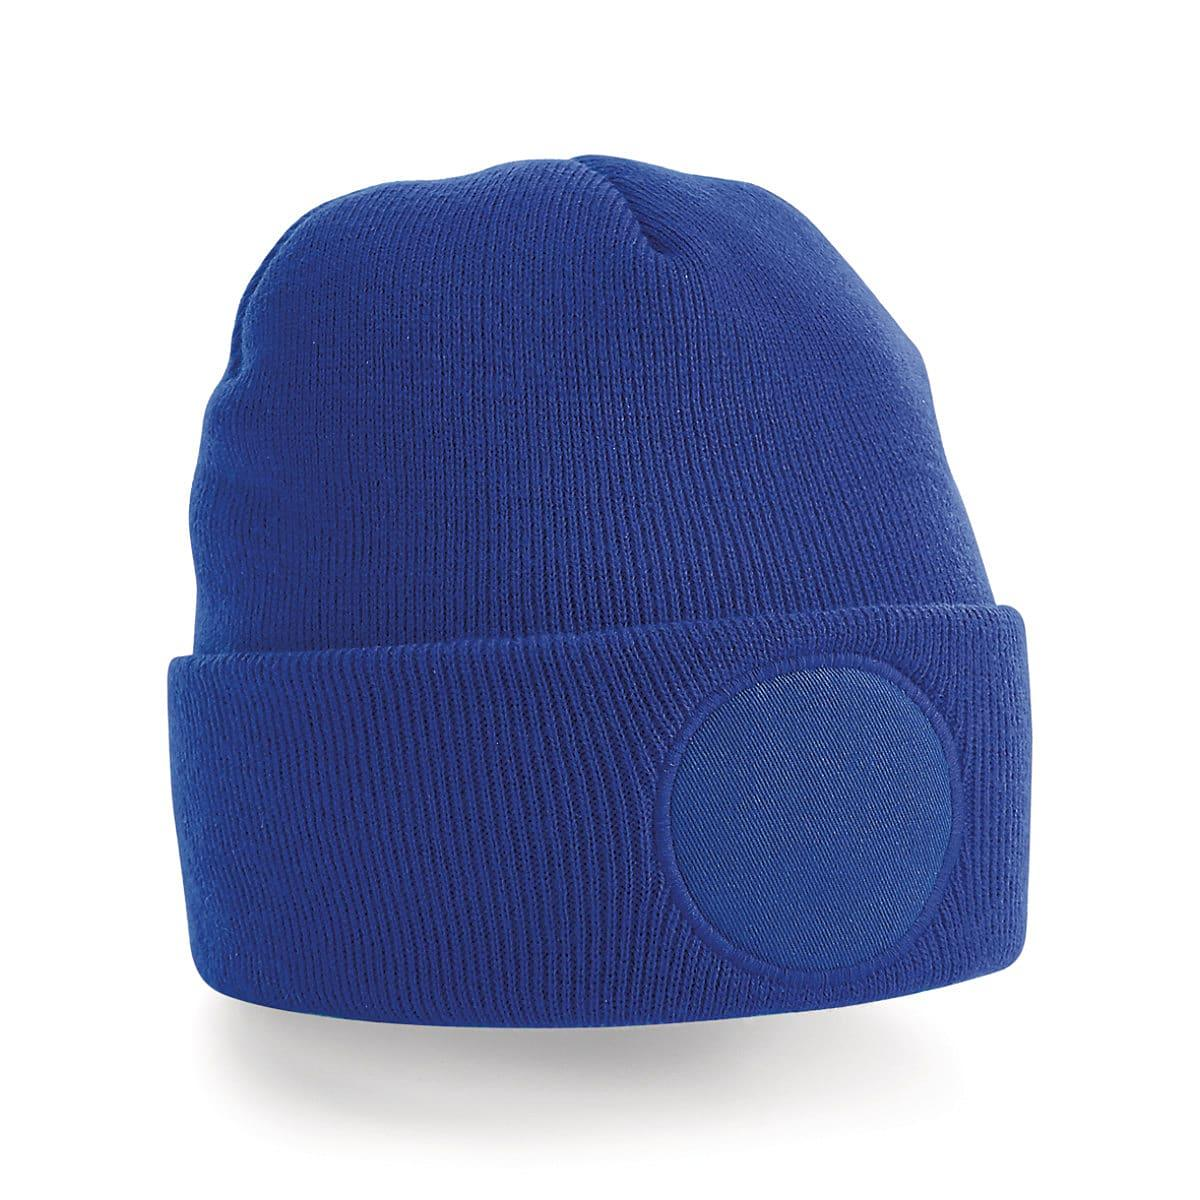 Beechfield Circular Patch Beanie Hat in Bright Royal (Product Code: B446)